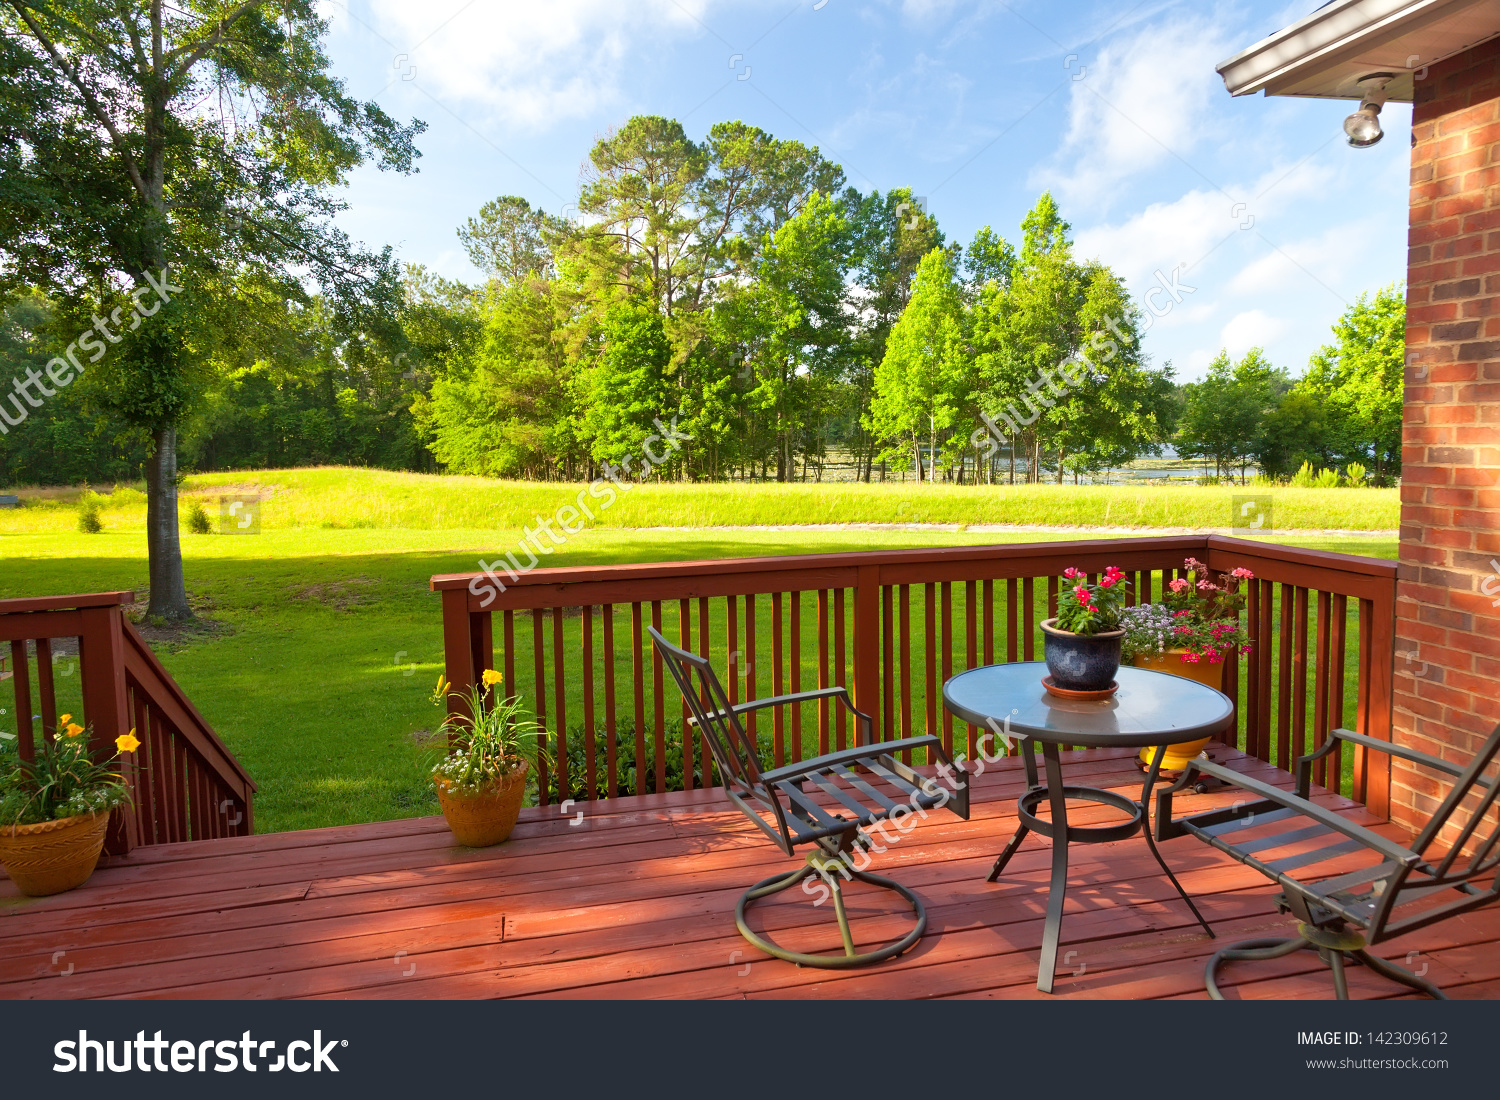 Residential Backyard Deck Overlooking Lawn Lake Stock Photo.